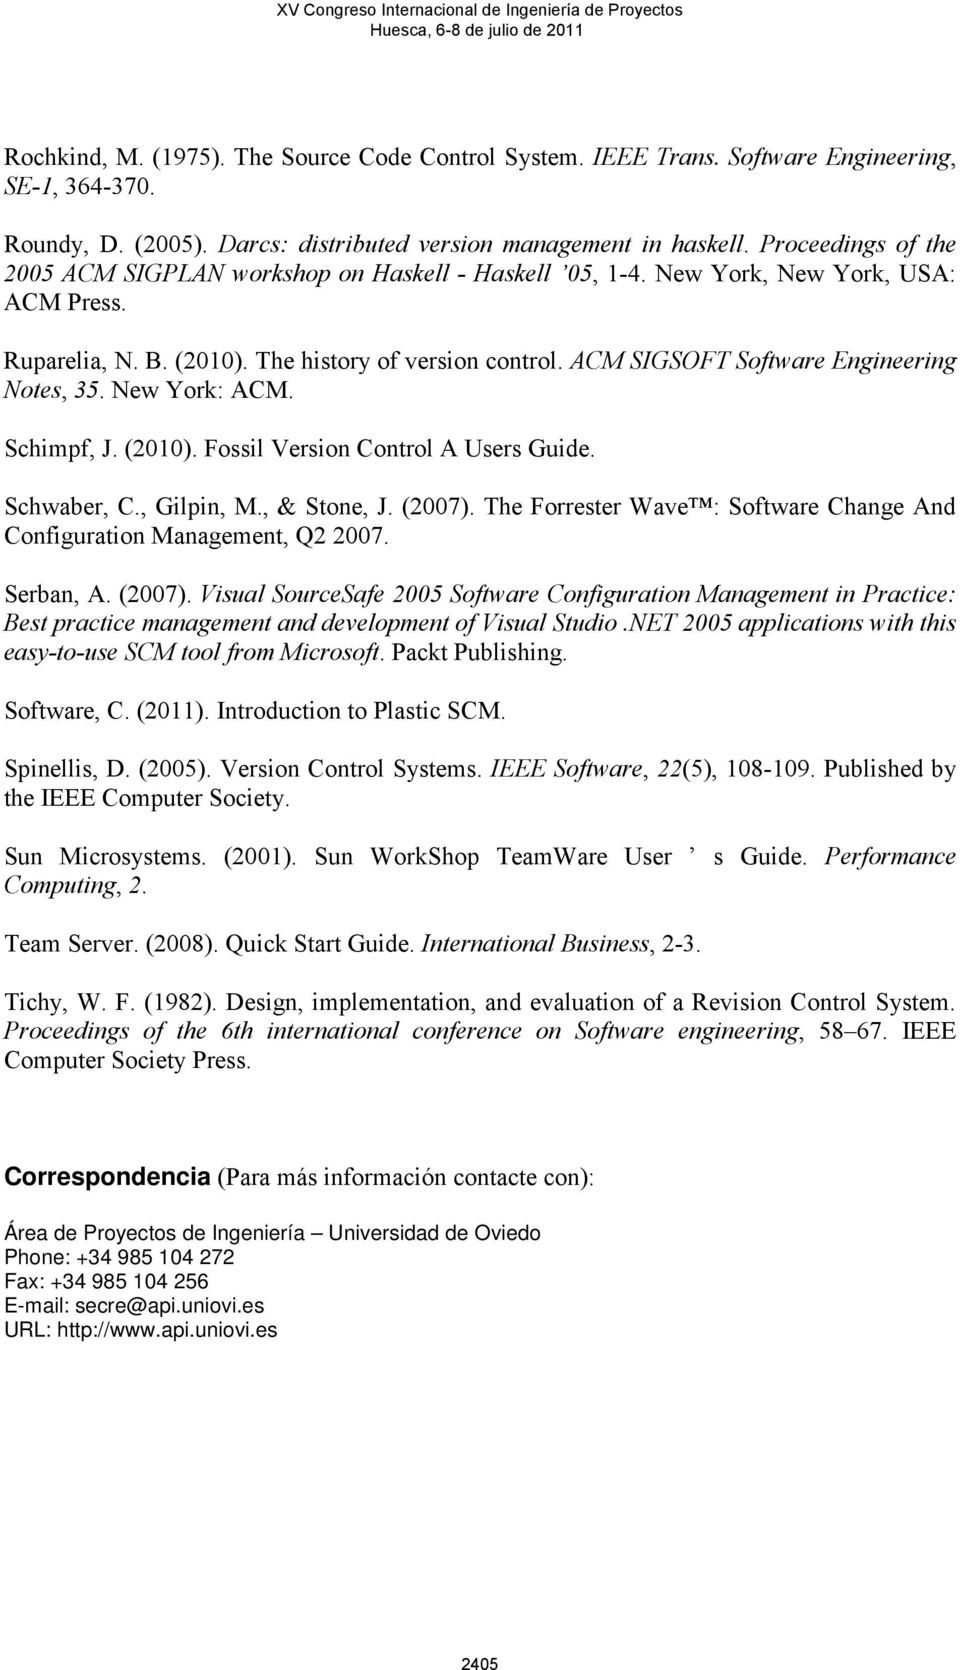 ACM SIGSOFT Software Engineering Notes, 35. New York: ACM. Schimpf, J. (2010). Fossil Version Control A Users Guide. Schwaber, C., Gilpin, M., & Stone, J. (2007).